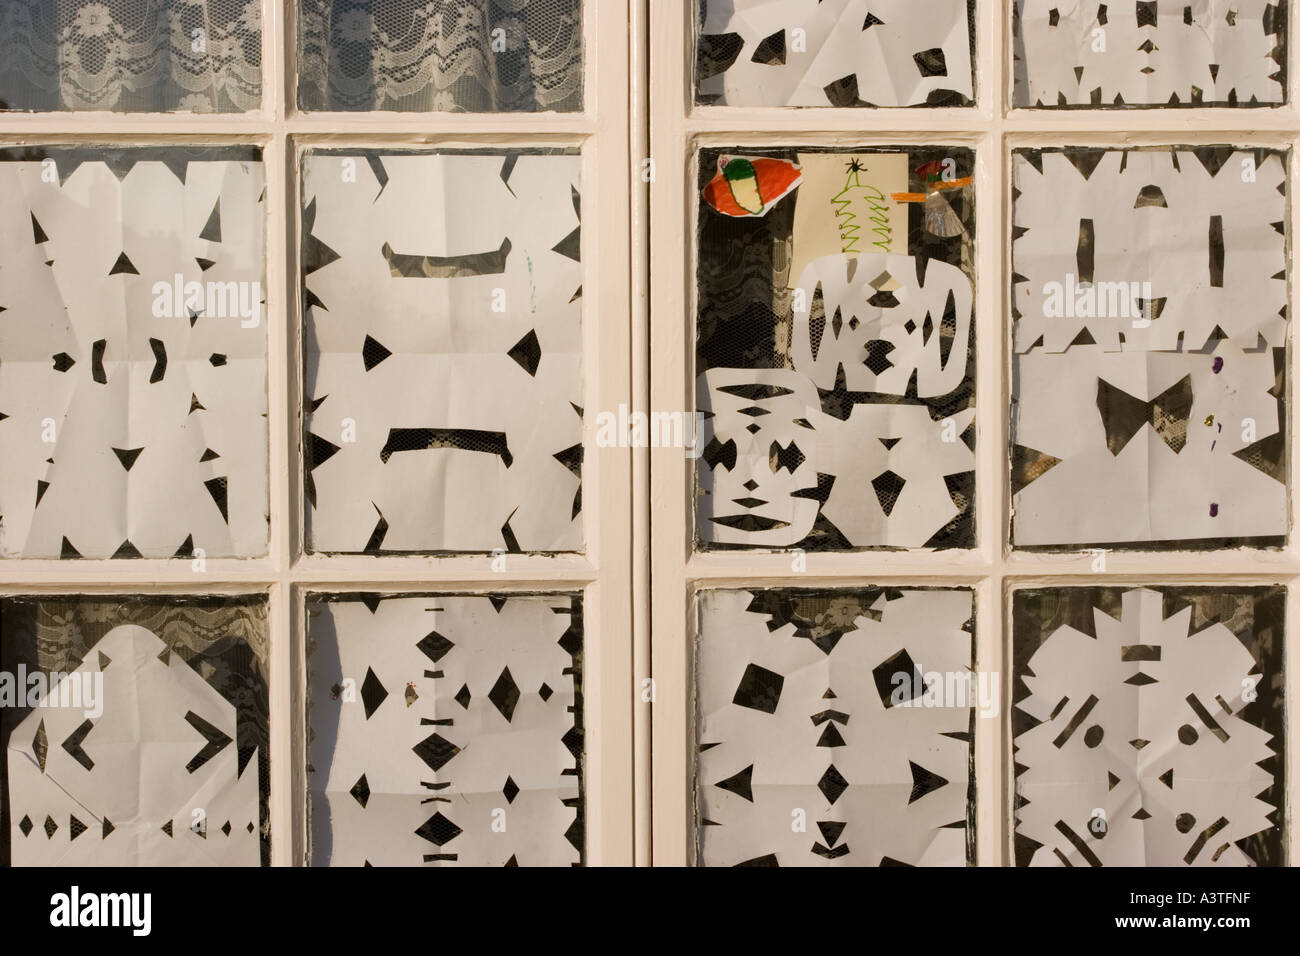 child s paper cutout snowflakes decorating a window at christmas